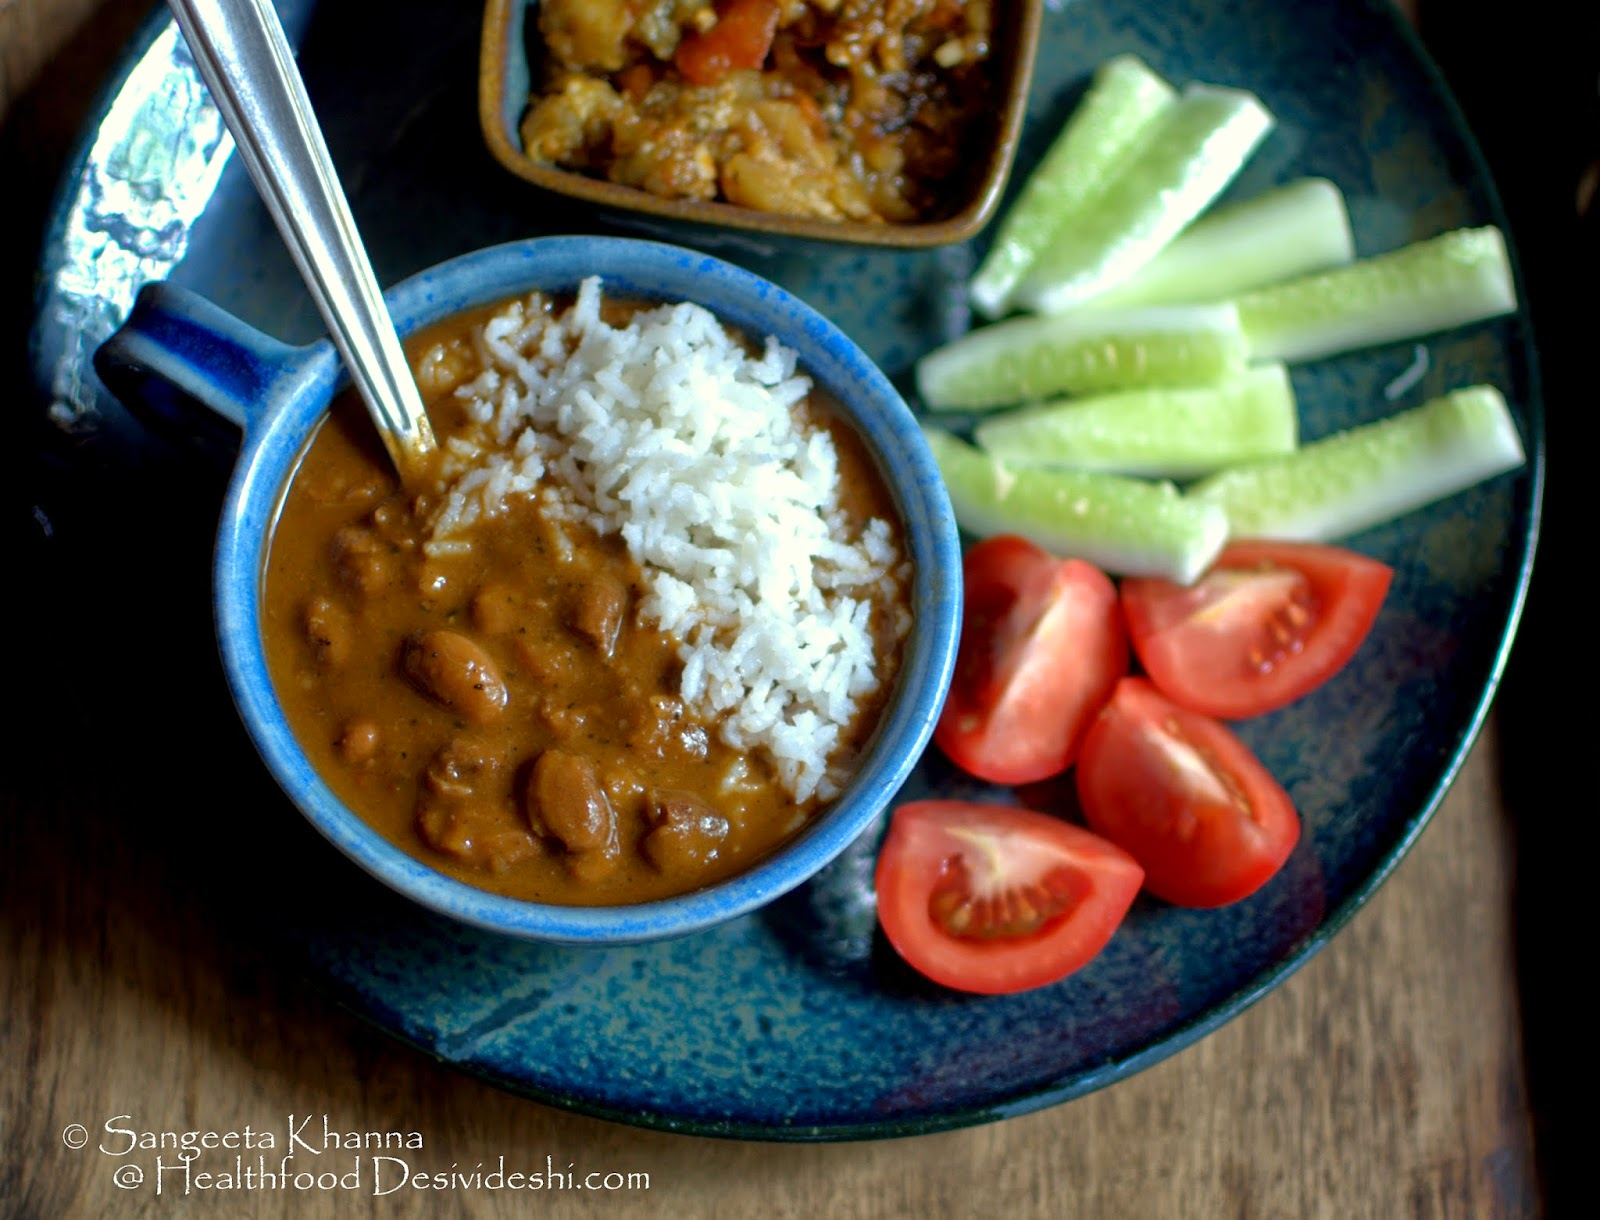 a quick rajma recipe : red kidney beans chilly/stew...